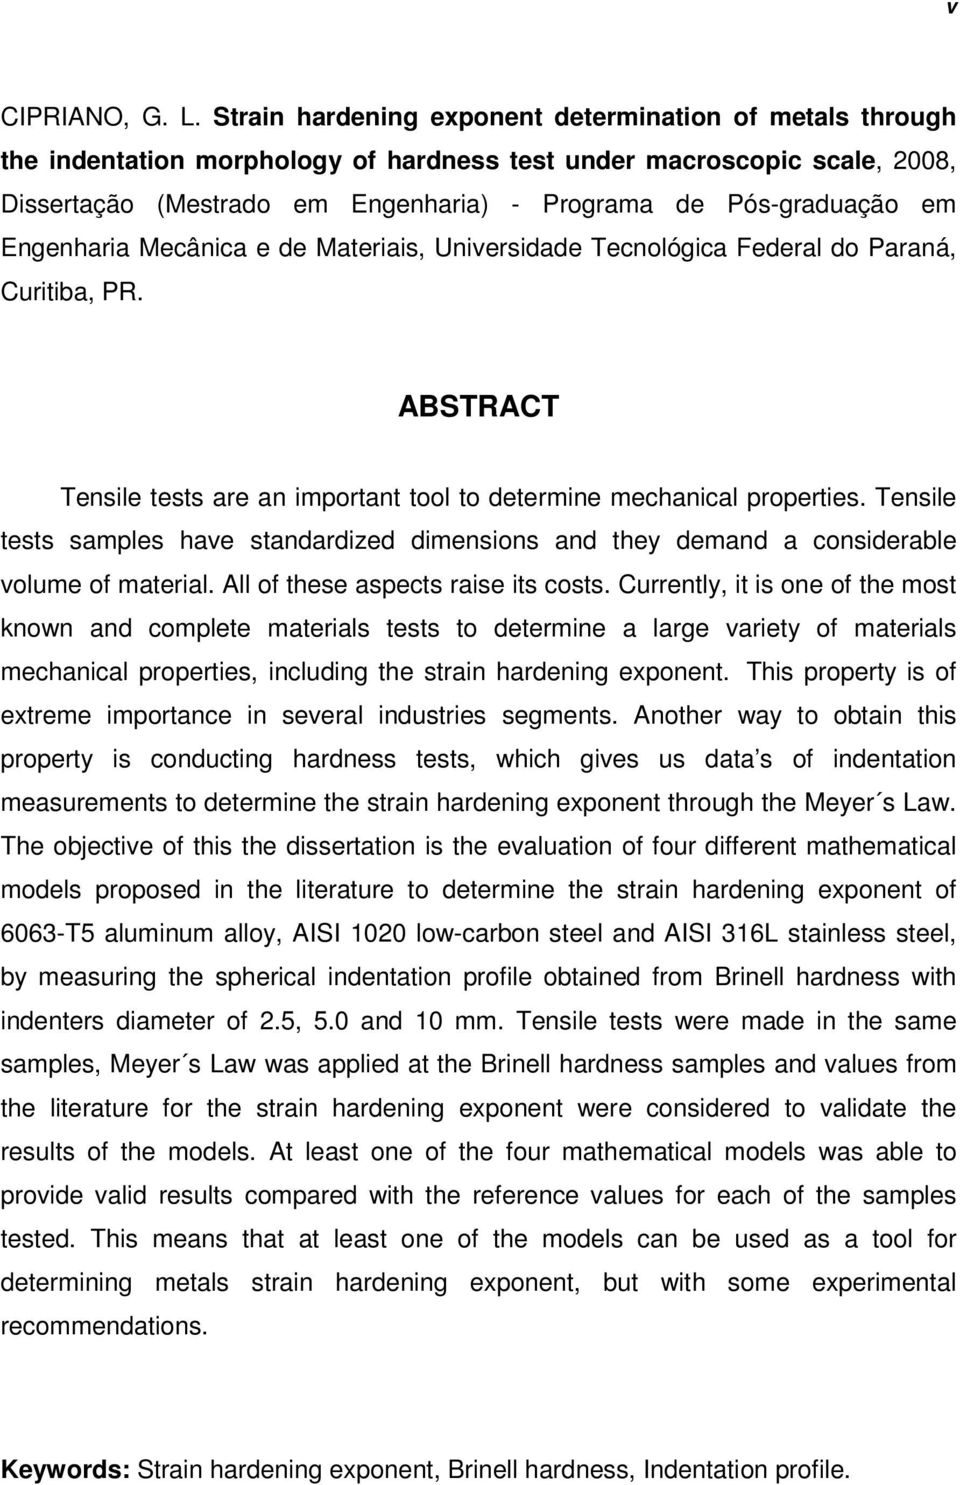 em Engenharia Mecânica e de Materiais, Universidade Tecnológica Federal do Paraná, Curitiba, PR. ABSTRACT Tensile tests are an important tool to determine mechanical properties.